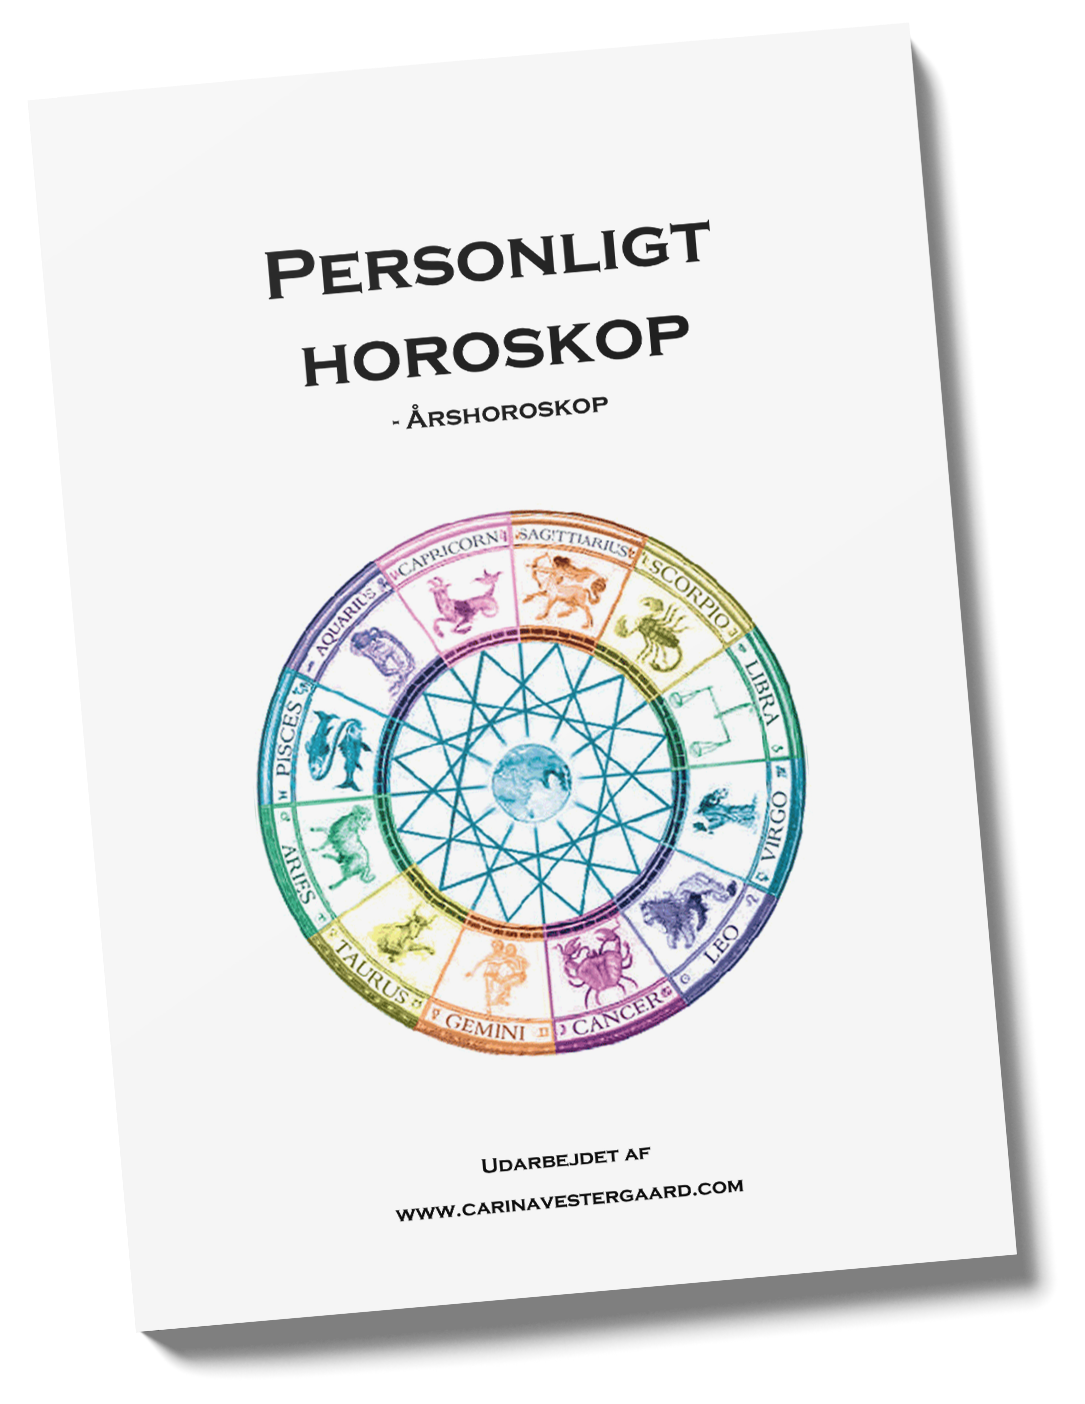 personligt årshoroskop, Personligt årshoroskop for 2021 – Kampagne